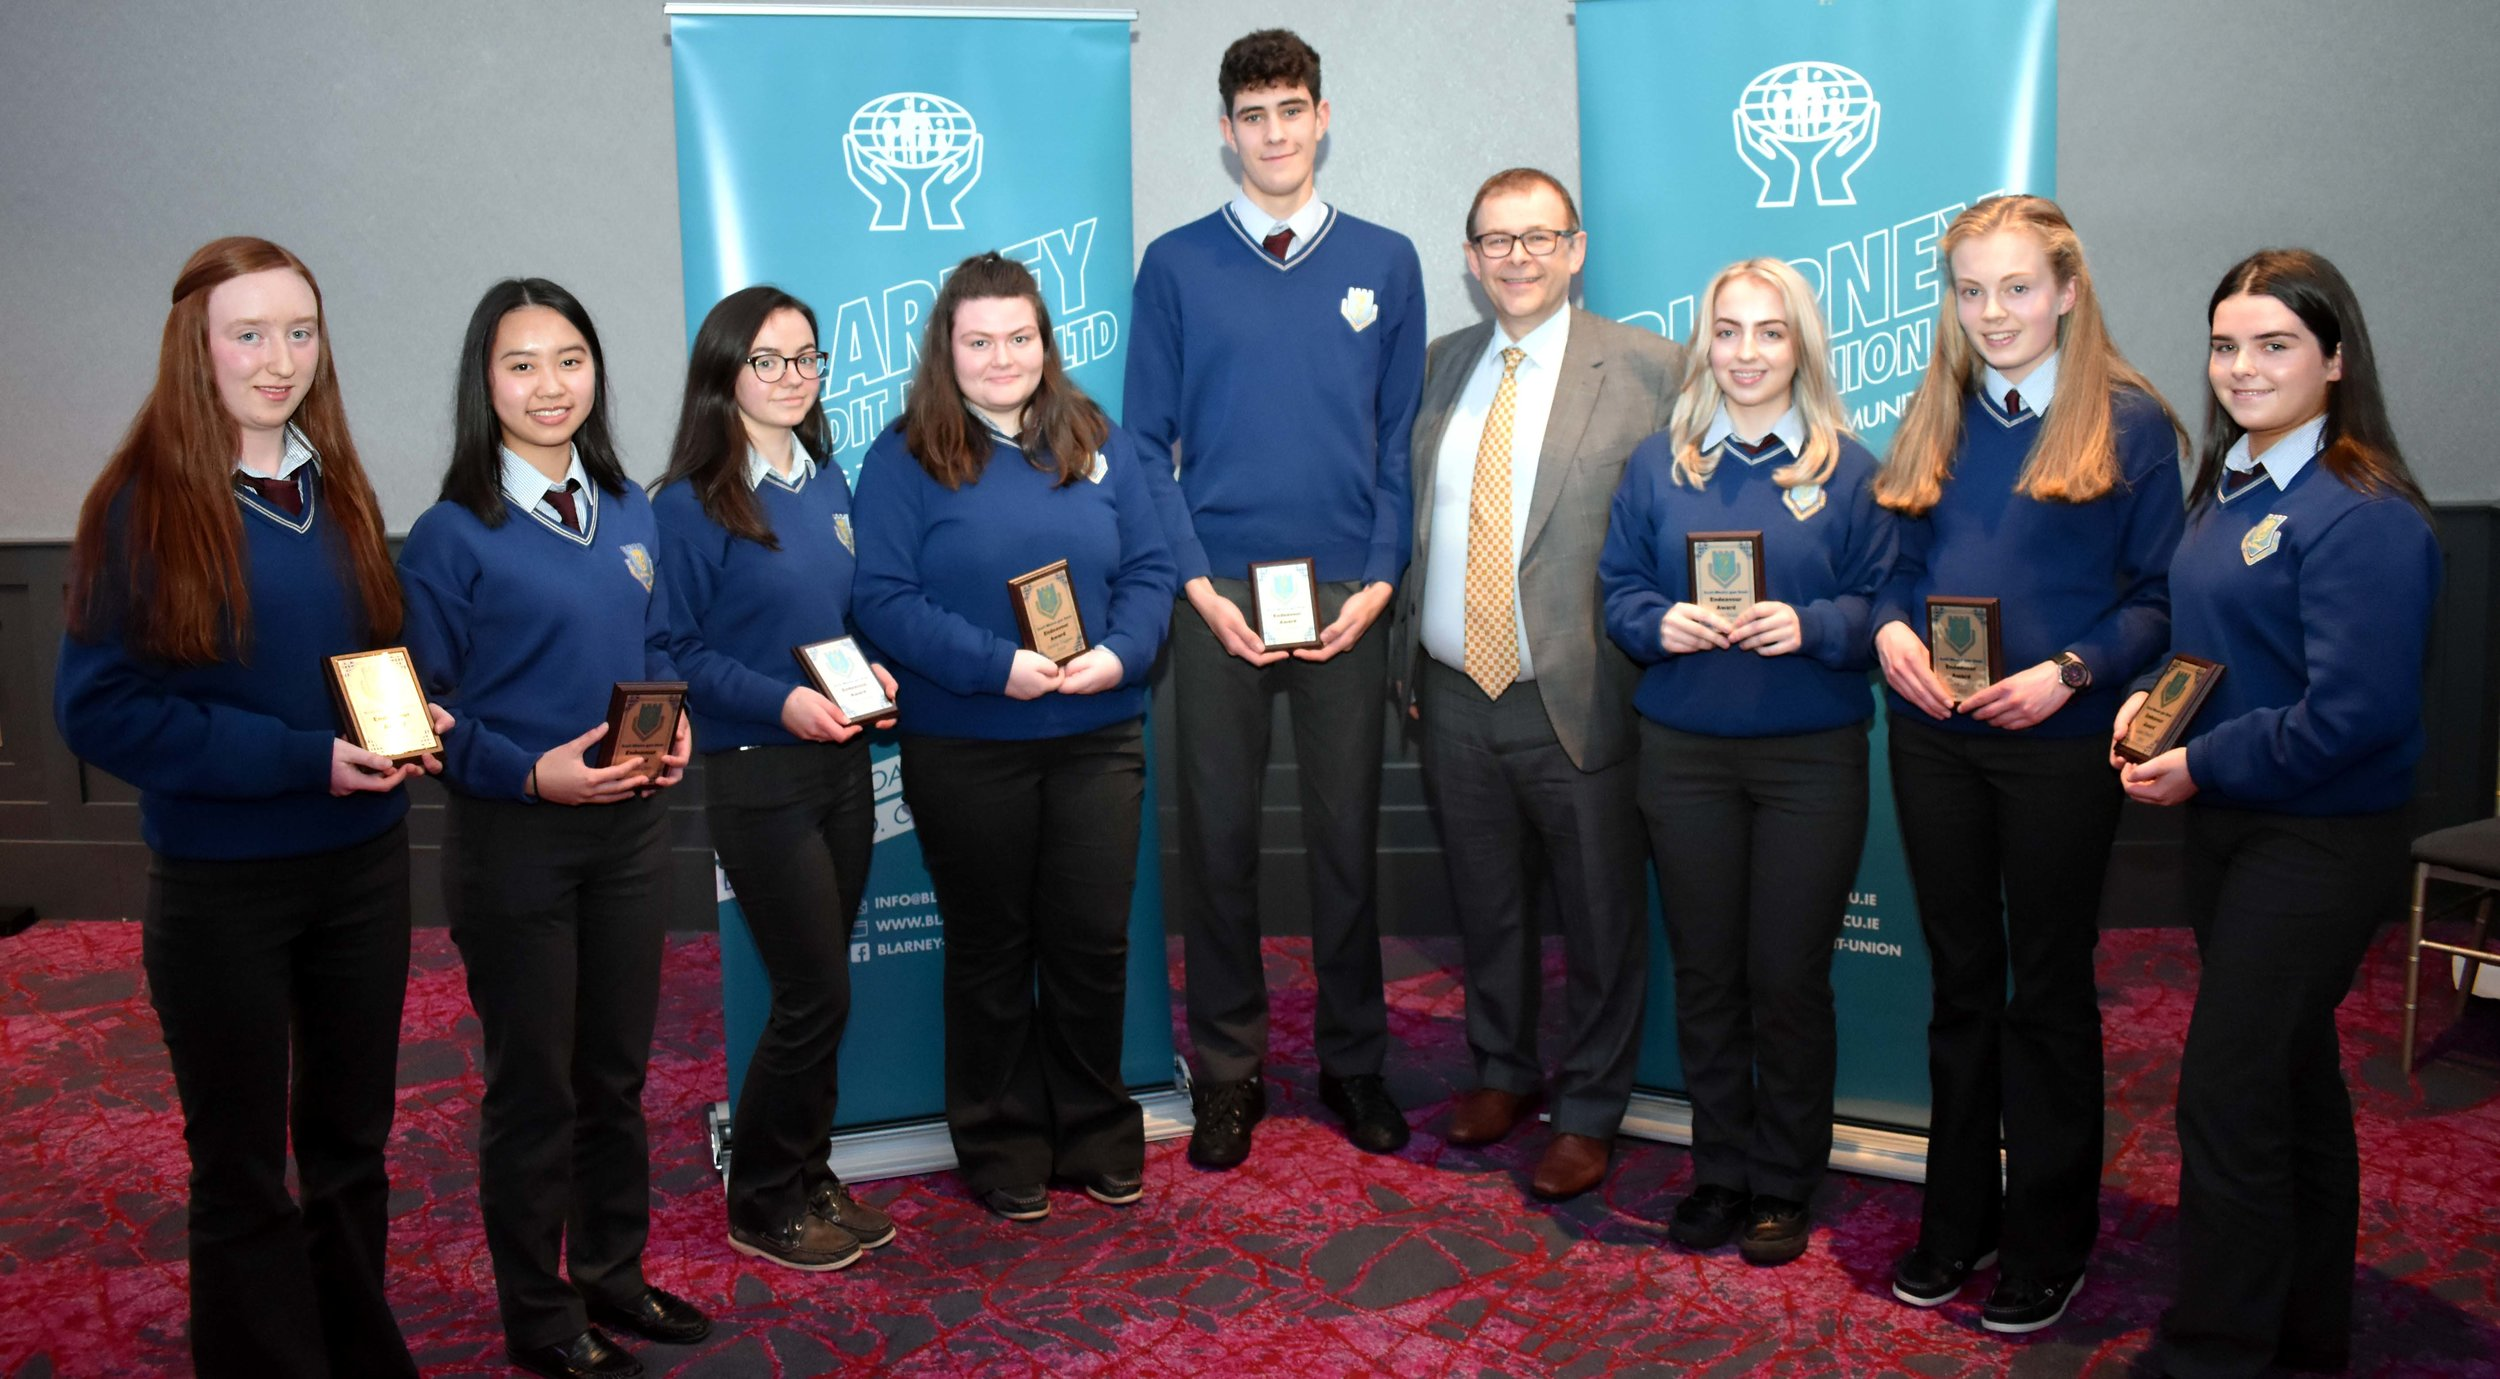 Endeavour Award: Aoife O' Leary, Hannah Chen, Ellen Horgan, Saoirse Duggan, Jim O' Donovan, Siún Healy, Orla Leahy and Laura Timothy accepted an award for having received Pope John Paul Awards for their community work in 2017 and 2018. (Pictured with Mr. Mark McGloughlin - BOM and Blarney Credit Union)